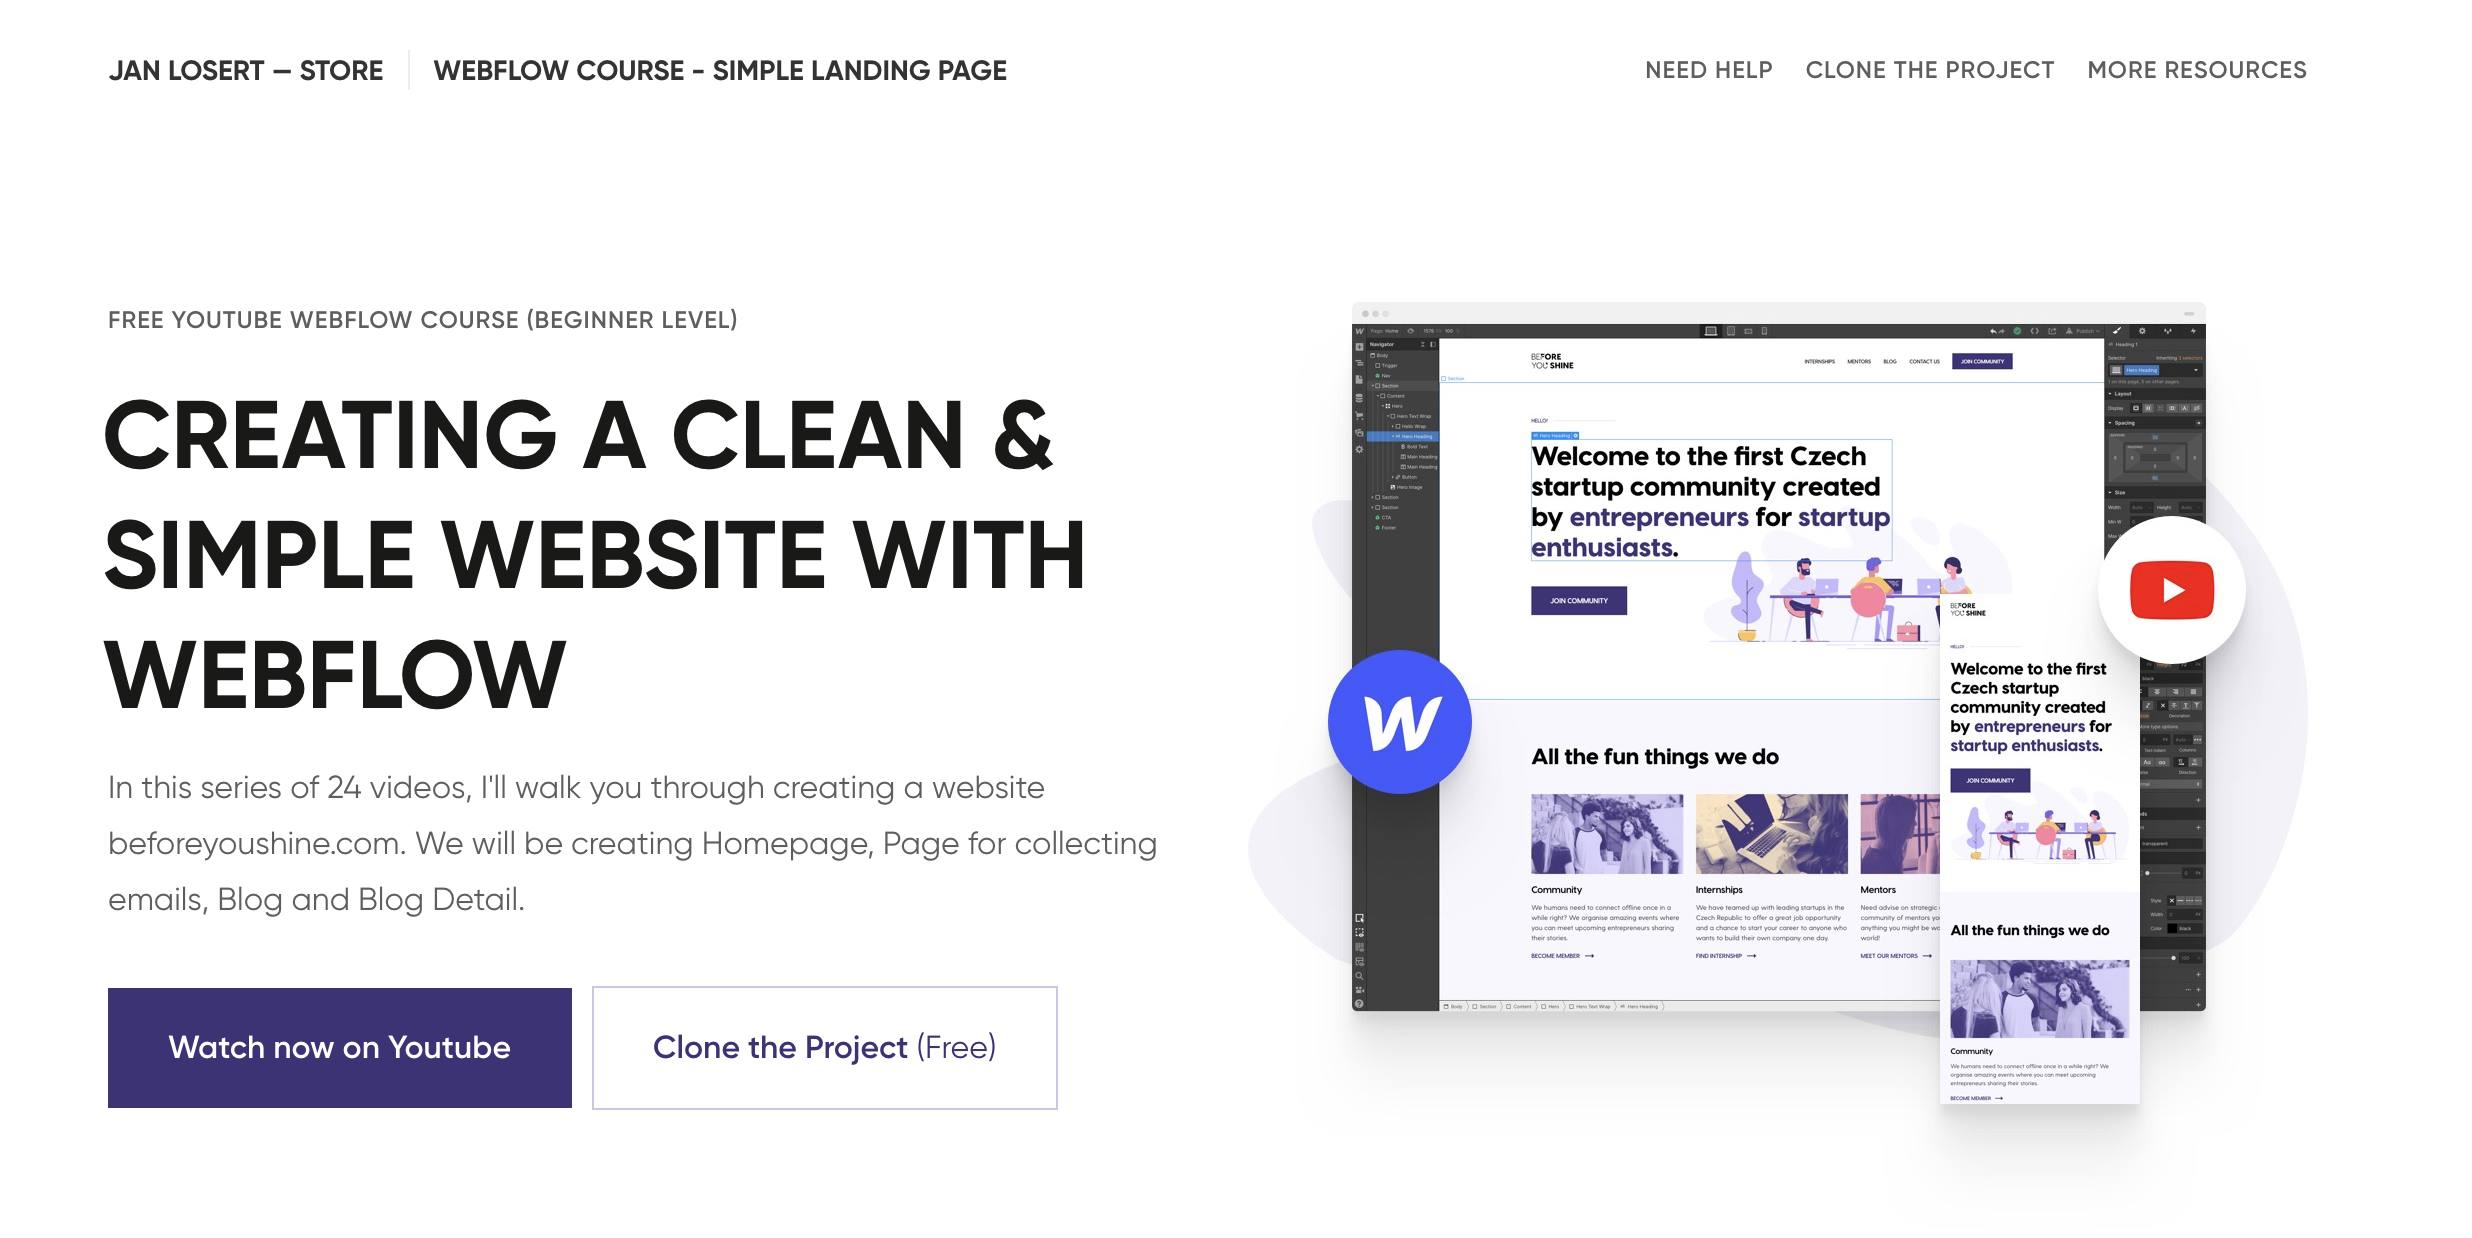 CREATING A CLEAN & SIMPLE WEBSITE WITH WEBFLOW